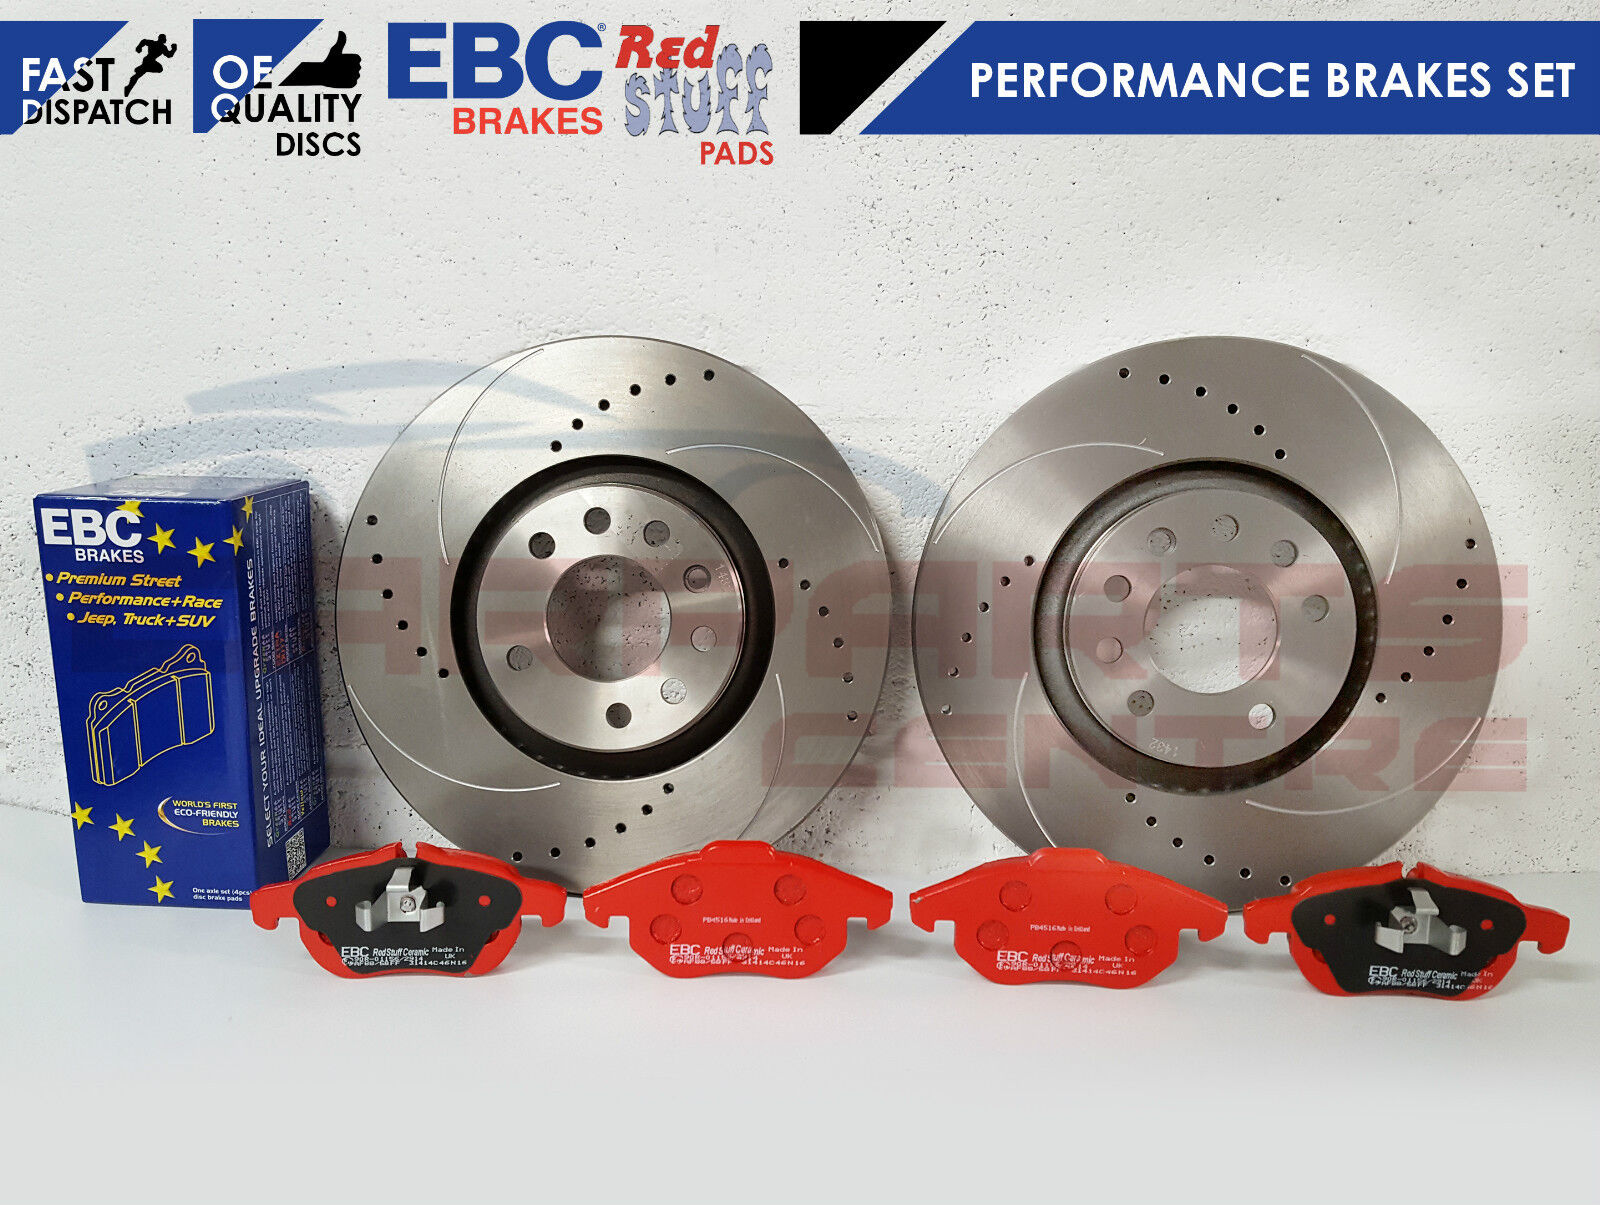 FOR VAUXHALL ASTRA VXR FRONT EBC PERFORMANCE RED STUFF BRAKE PADS UPGRADES